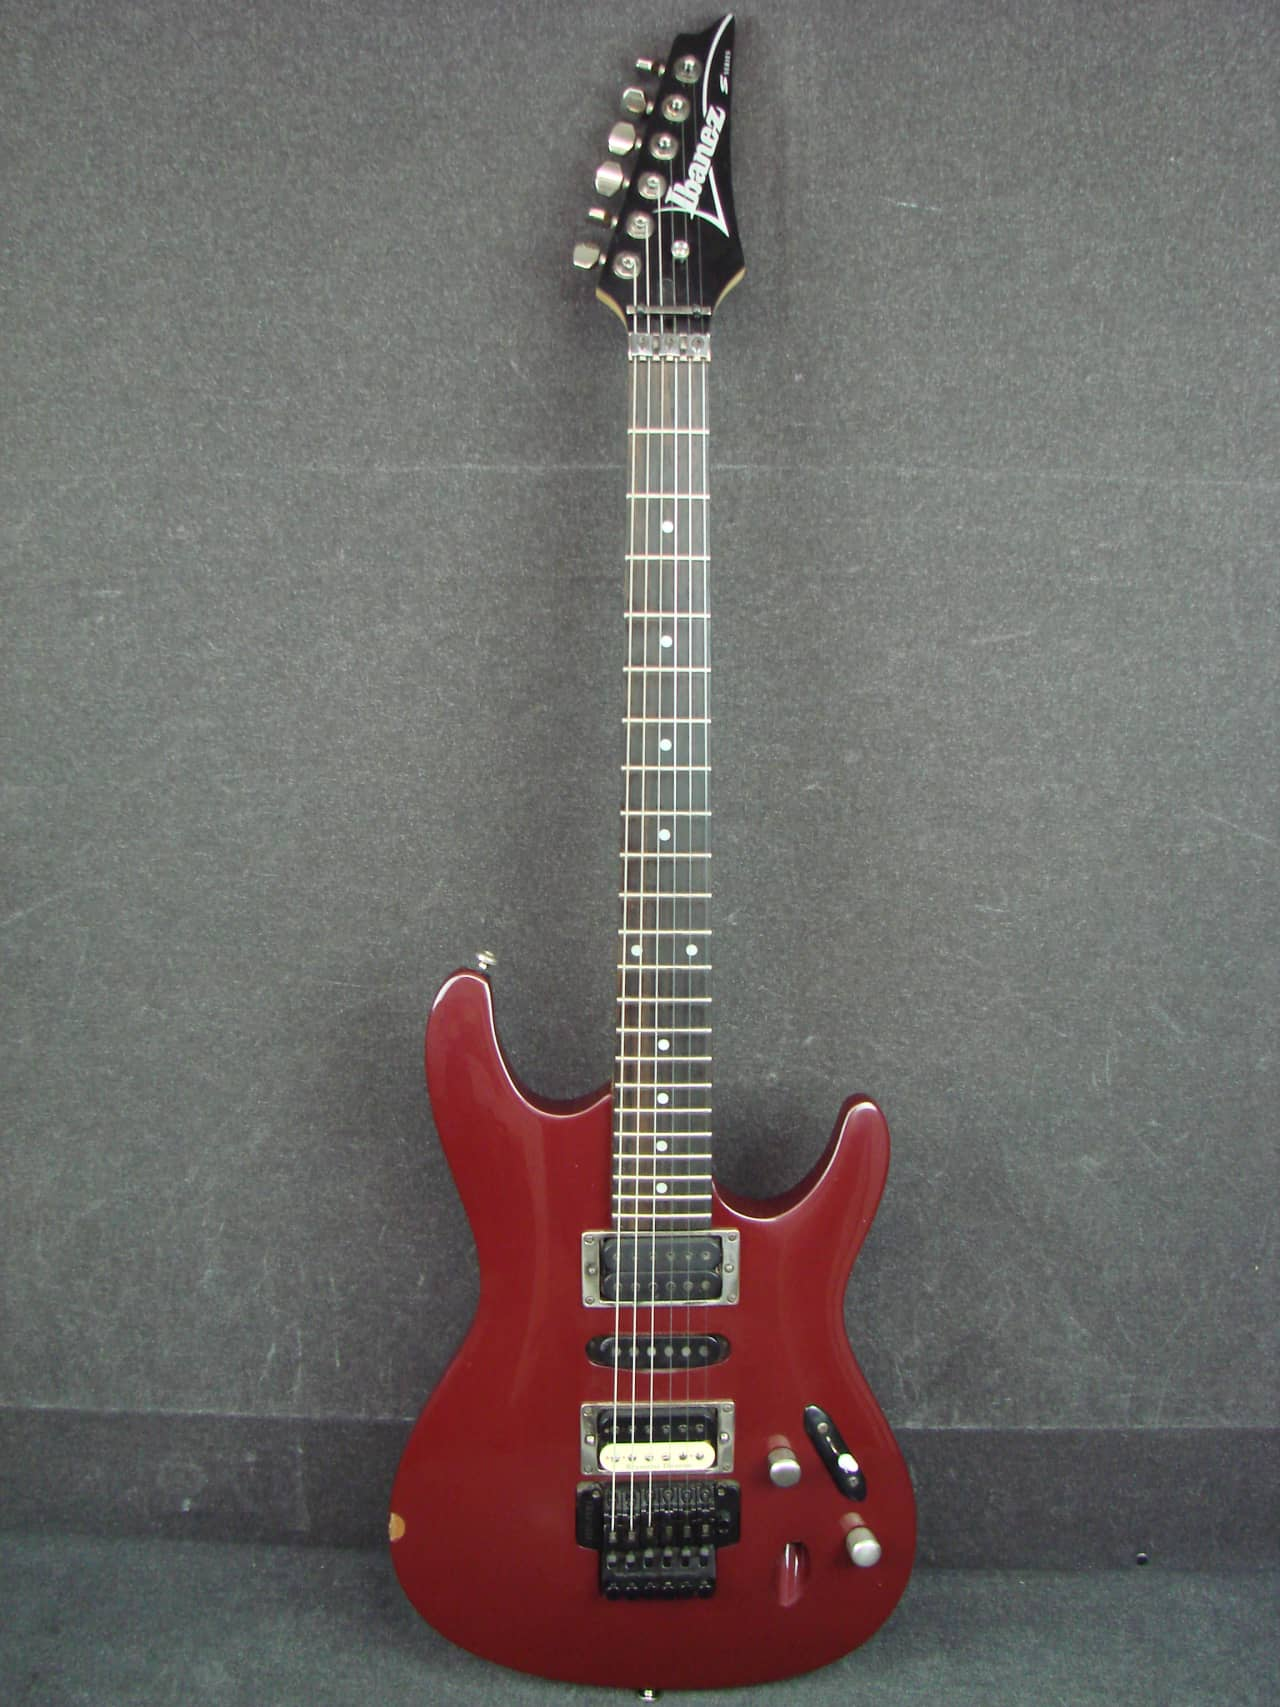 Ibanez S Series S470 Red Electric Guitar w/ Upgraded Seymour | Reverb